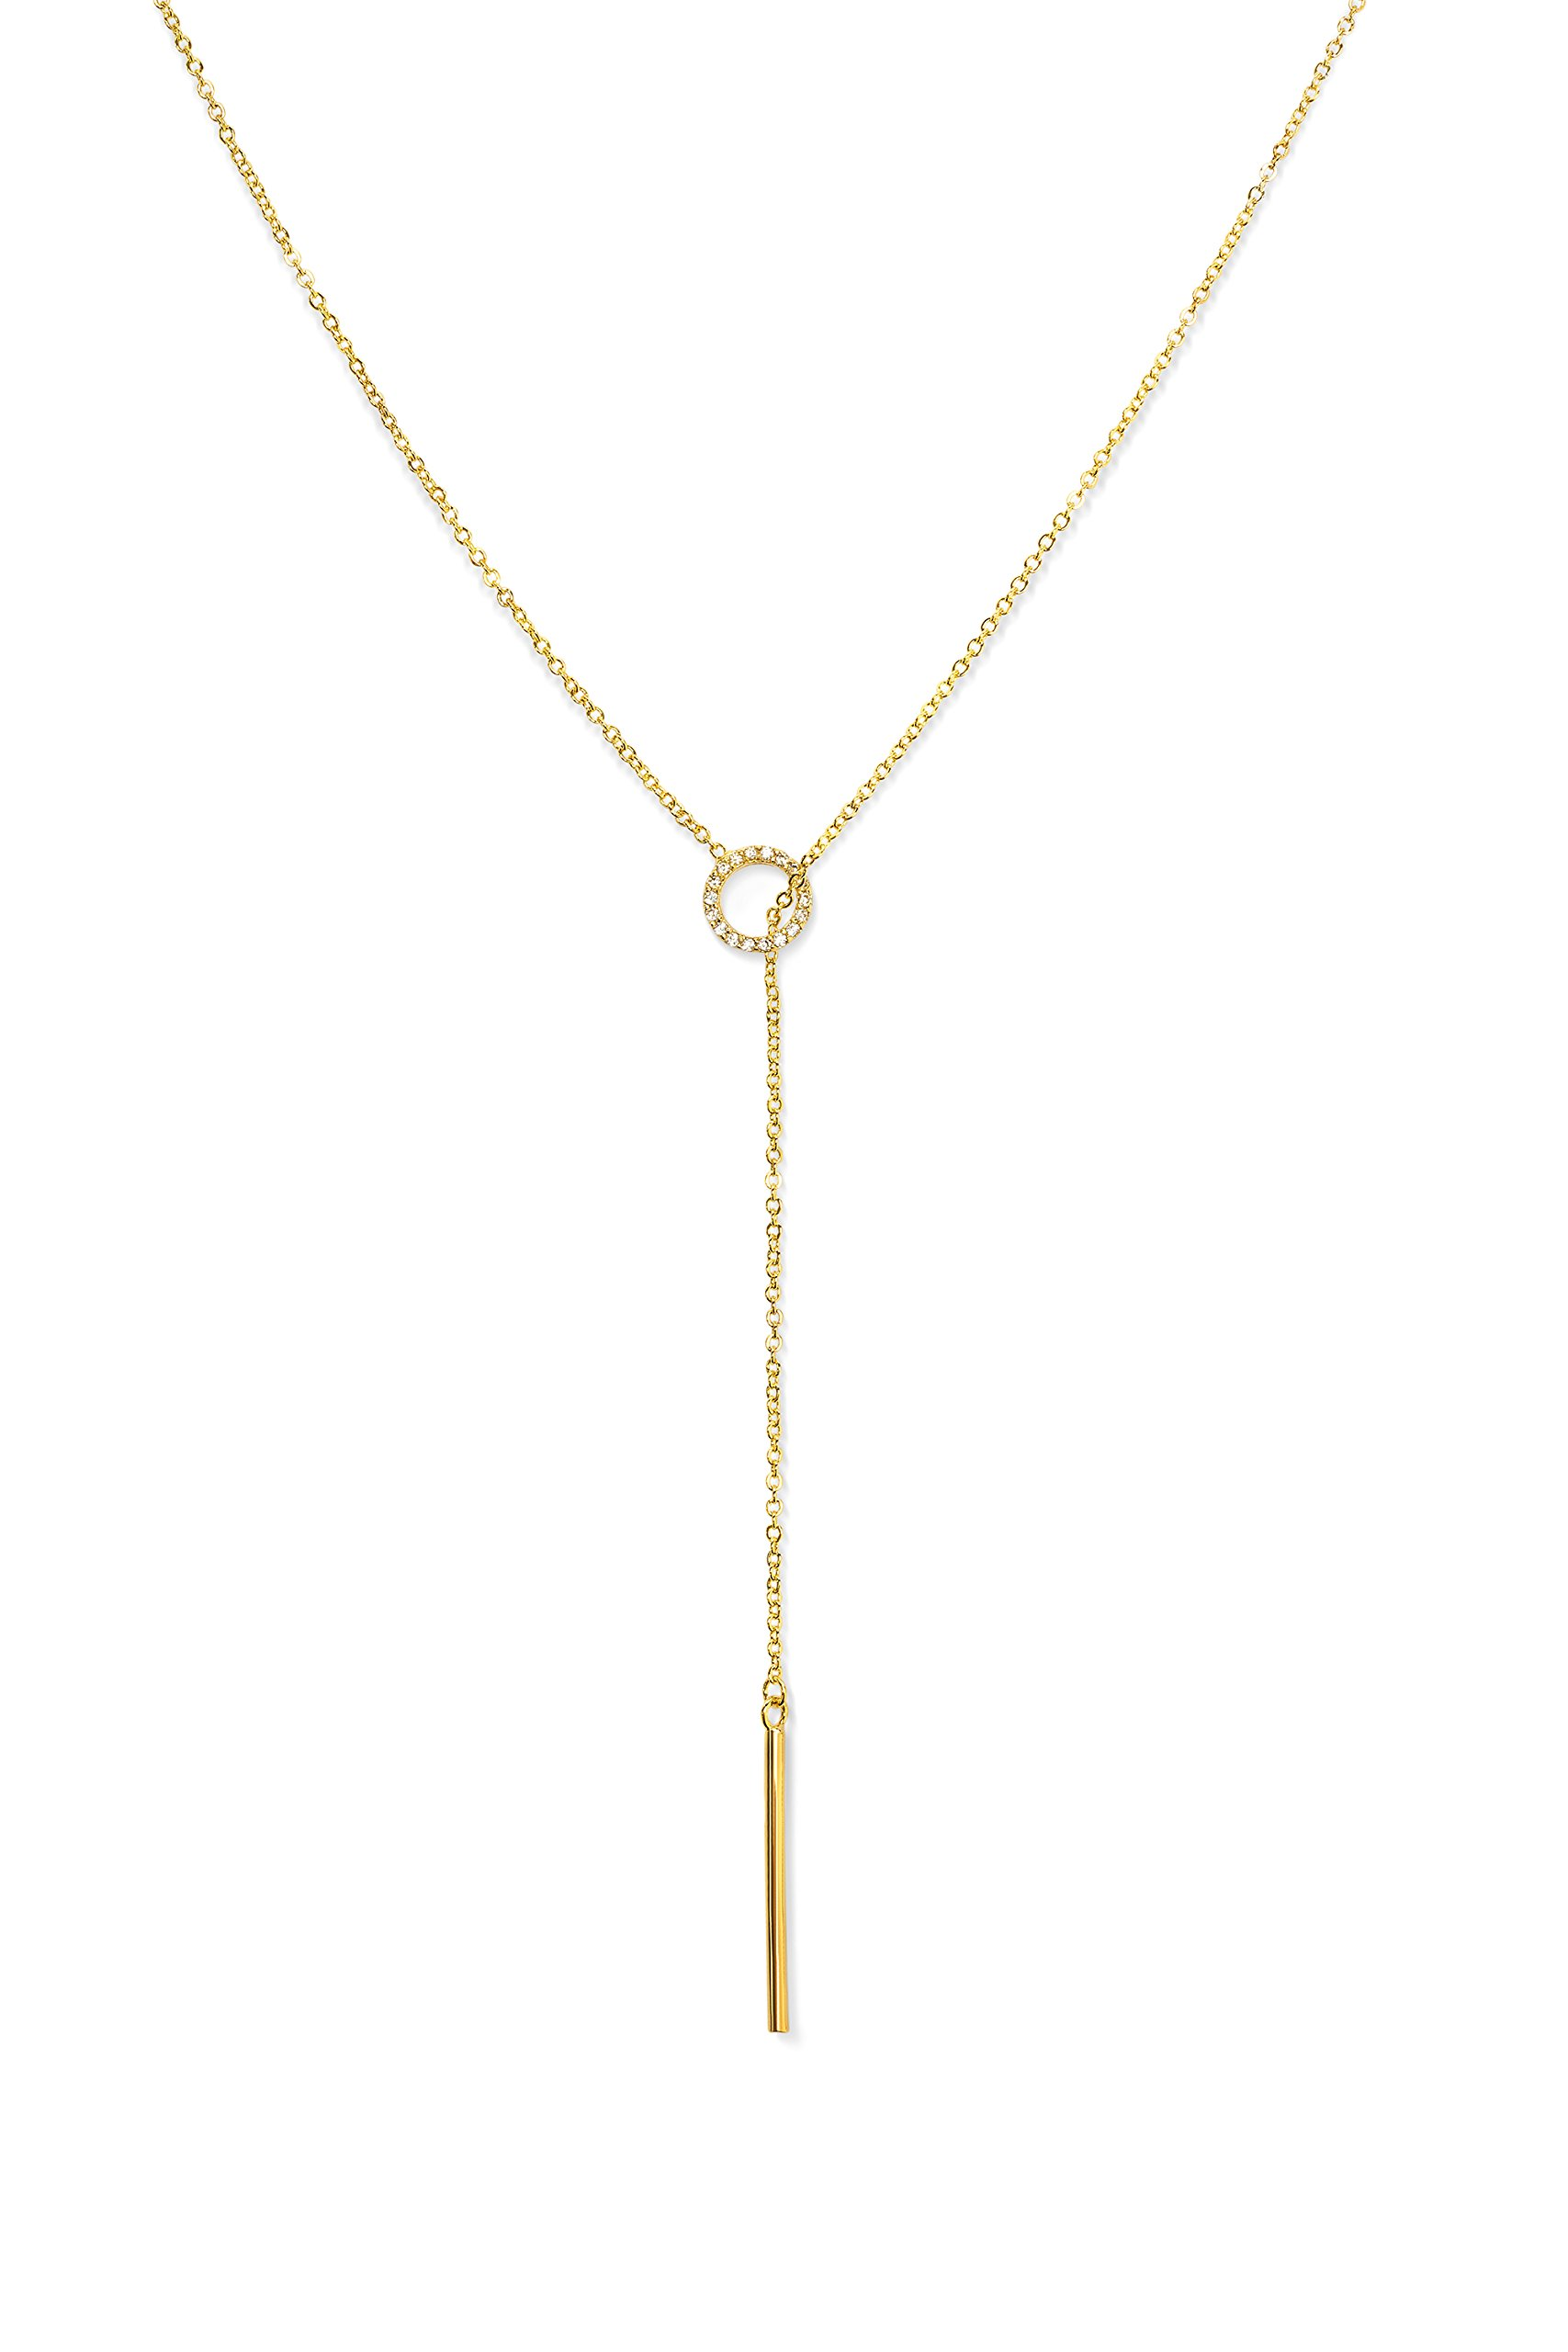 Gorgeous Y Necklaces for Women | Candace Cameron Designed Lariat Necklaces | Gold Necklaces for Women | Y Necklace | Drop Necklaces for Women | 14k Gold Necklace | Front Adjustable Long Chain Necklace